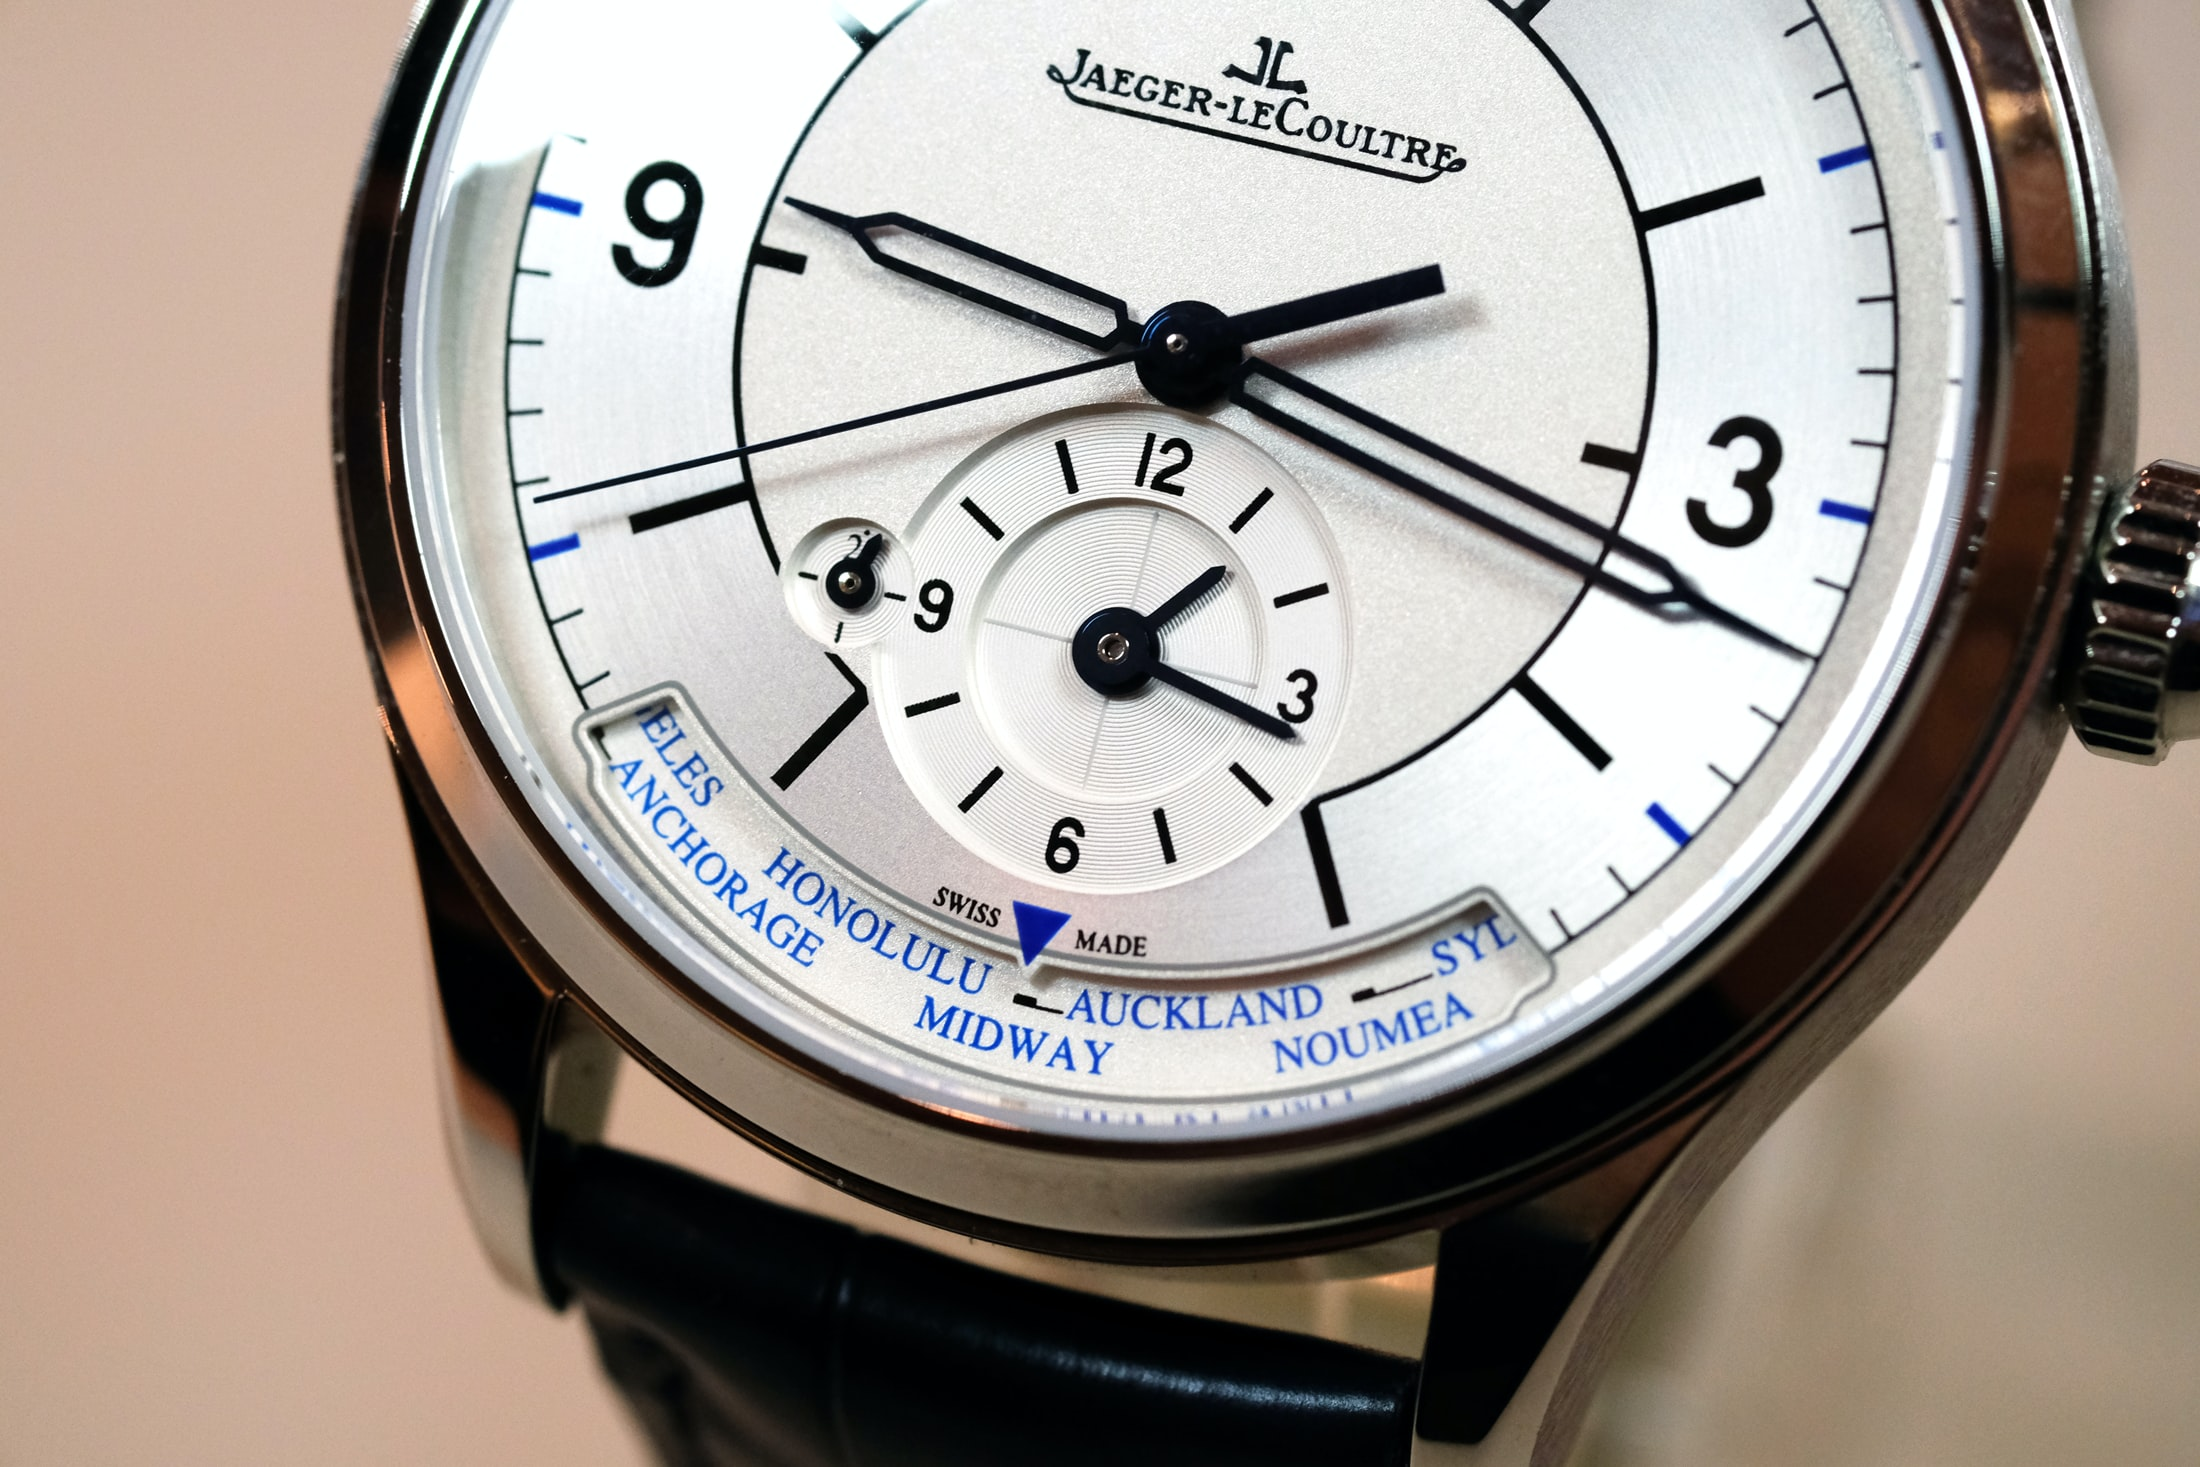 Introducing: The Jaeger-LeCoultre Master Control Collection With Sector Dials (Live Pics + Pricing) Introducing: The Jaeger-LeCoultre Master Control Collection With Sector Dials (Live Pics + Pricing) sector 08